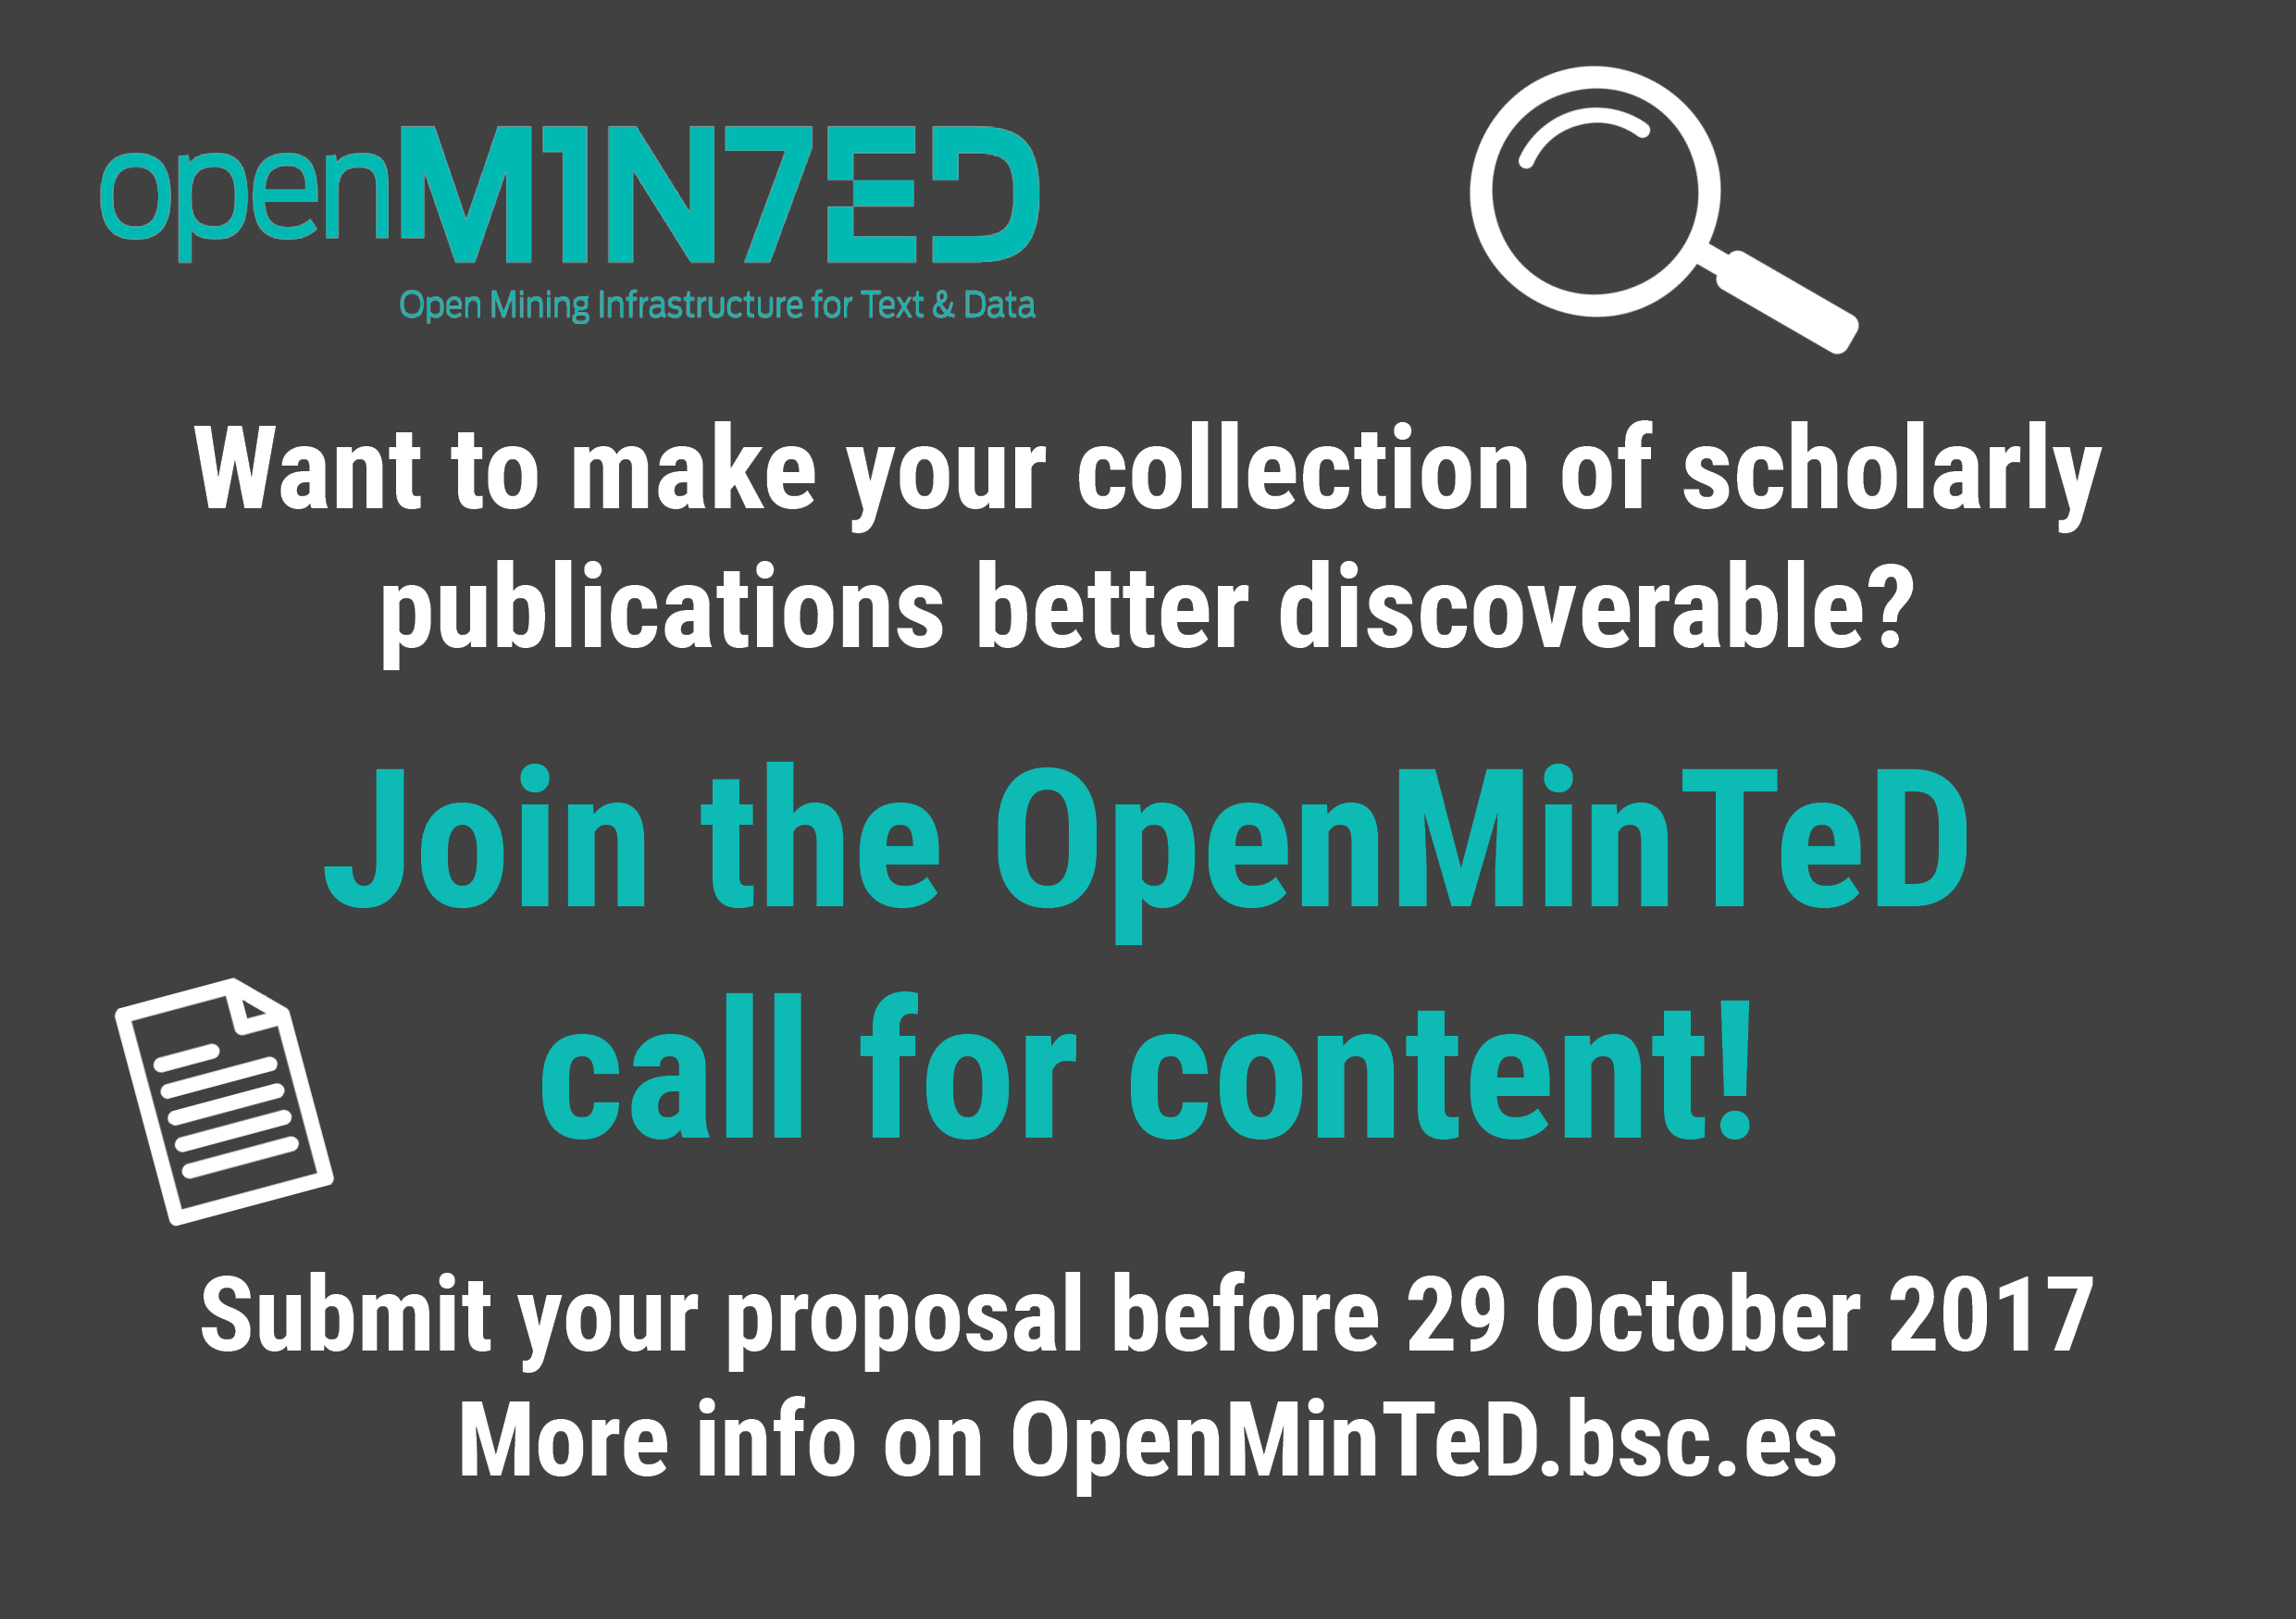 Join the OpenMinTeD call for content